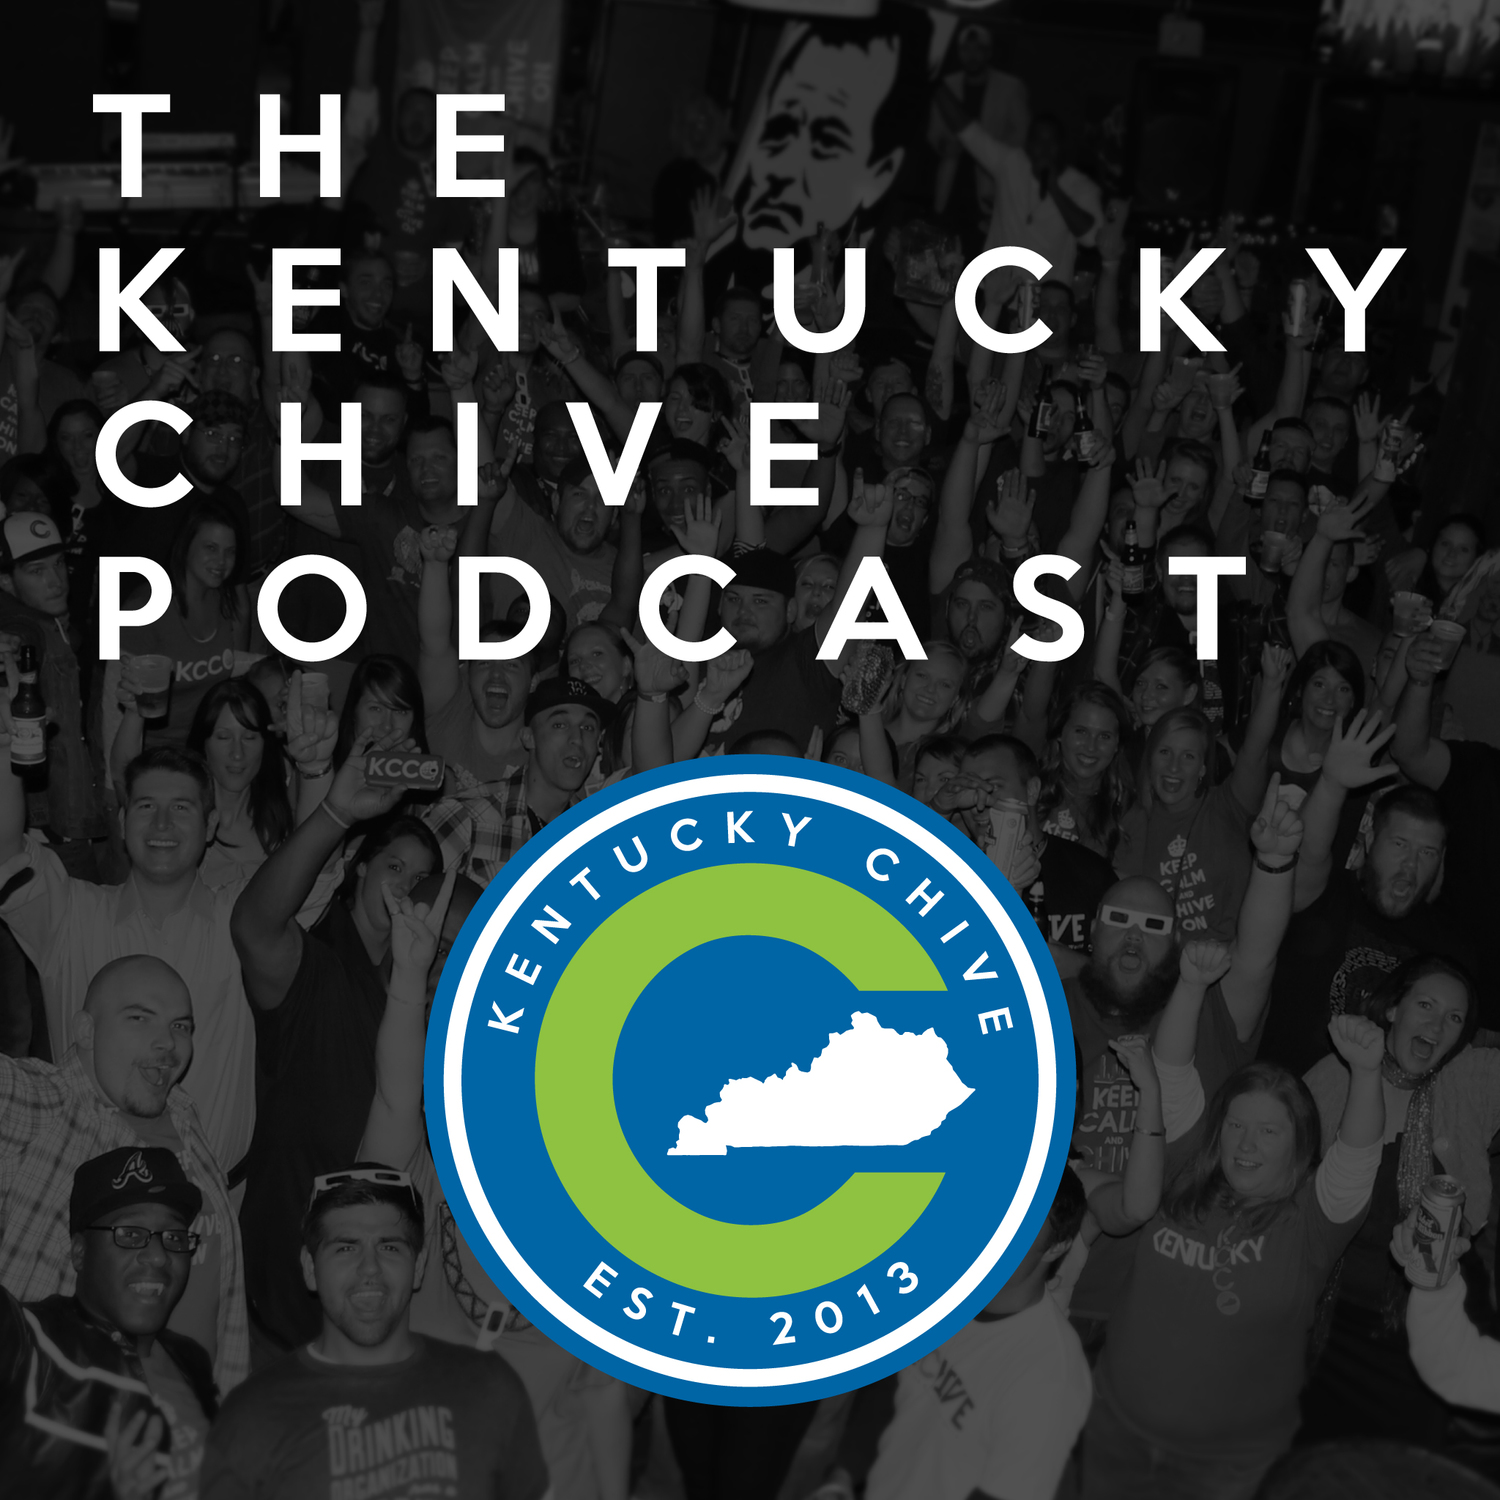 The Kentucky Chive Podcast - Kentucky Chive